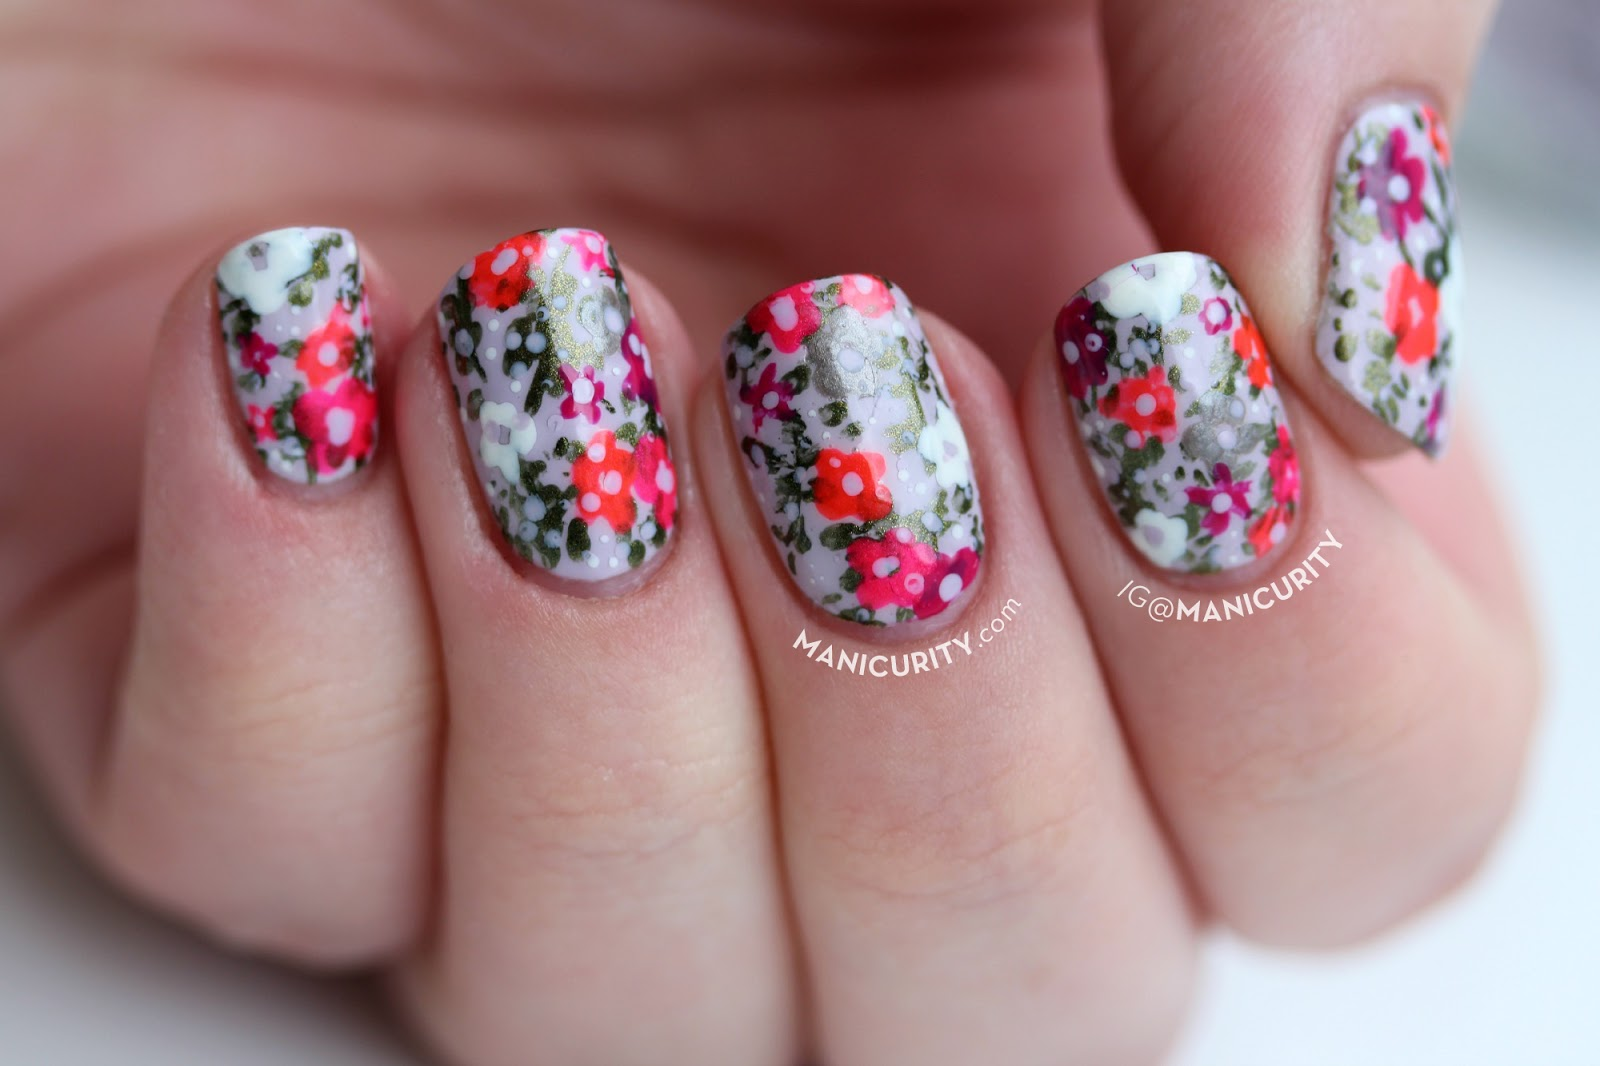 Manicurity Spring To Summer Floral Neon Pastel Nail Art With